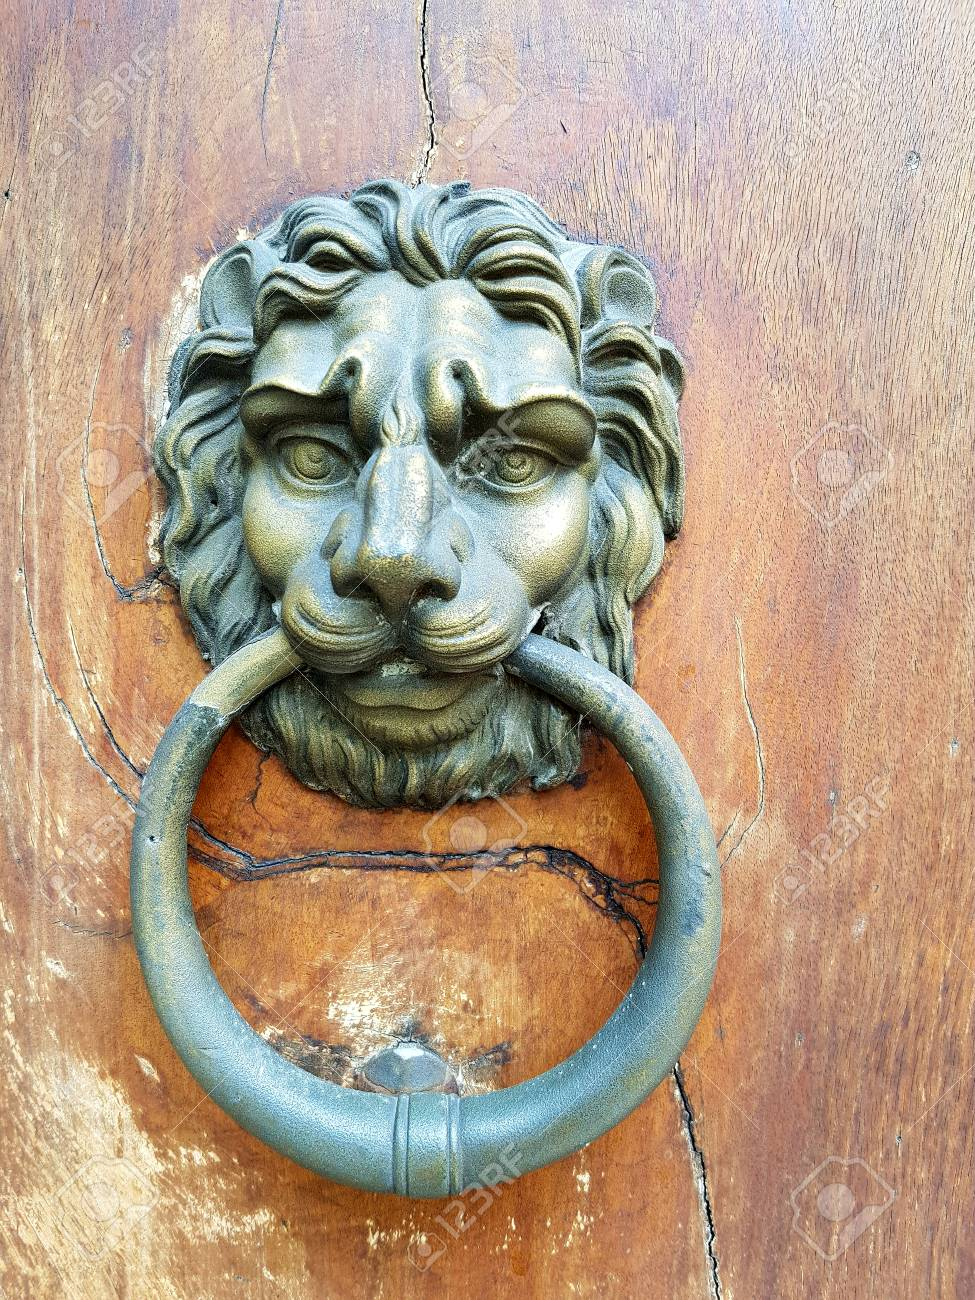 medium resolution of antique brass door knocker in the shape of a lion s head with large ring in